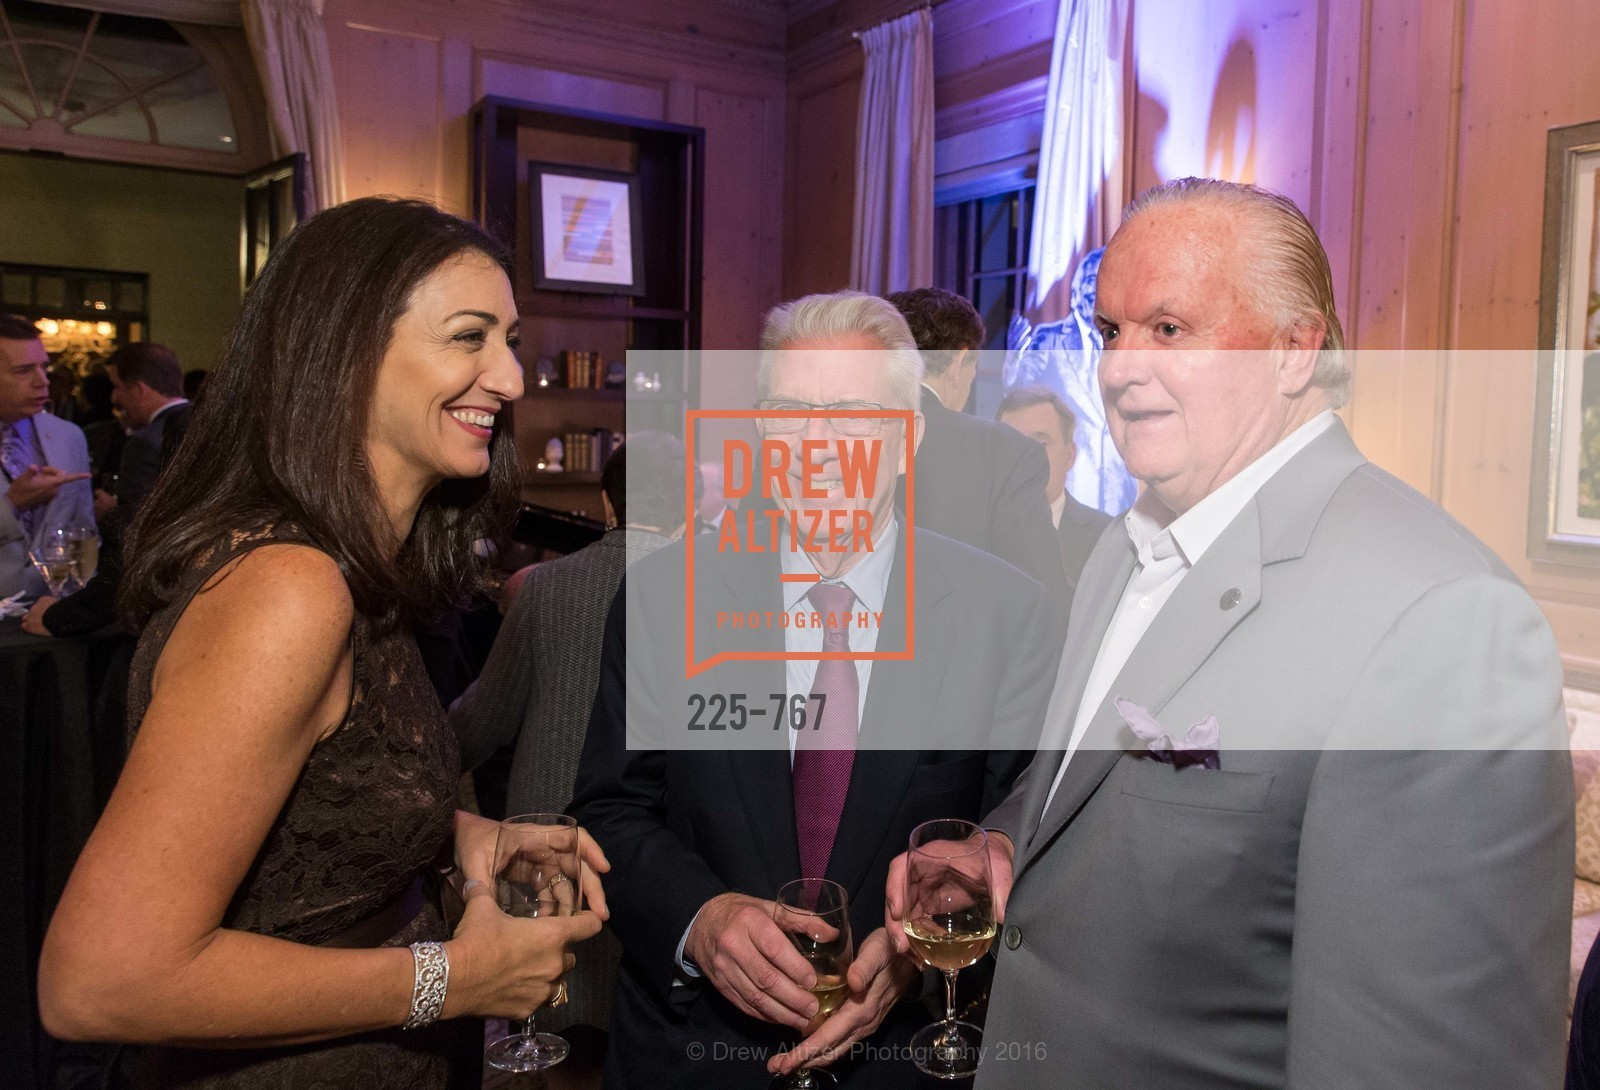 Pam Baer, Rich Guggenhime, Kevin O'Brien, A Special Reception with Tony Bennett, The Fairmont, San Francisco, The Penthouse Suite, January 26th, 2016,Drew Altizer, Drew Altizer Photography, full-service agency, private events, San Francisco photographer, photographer california